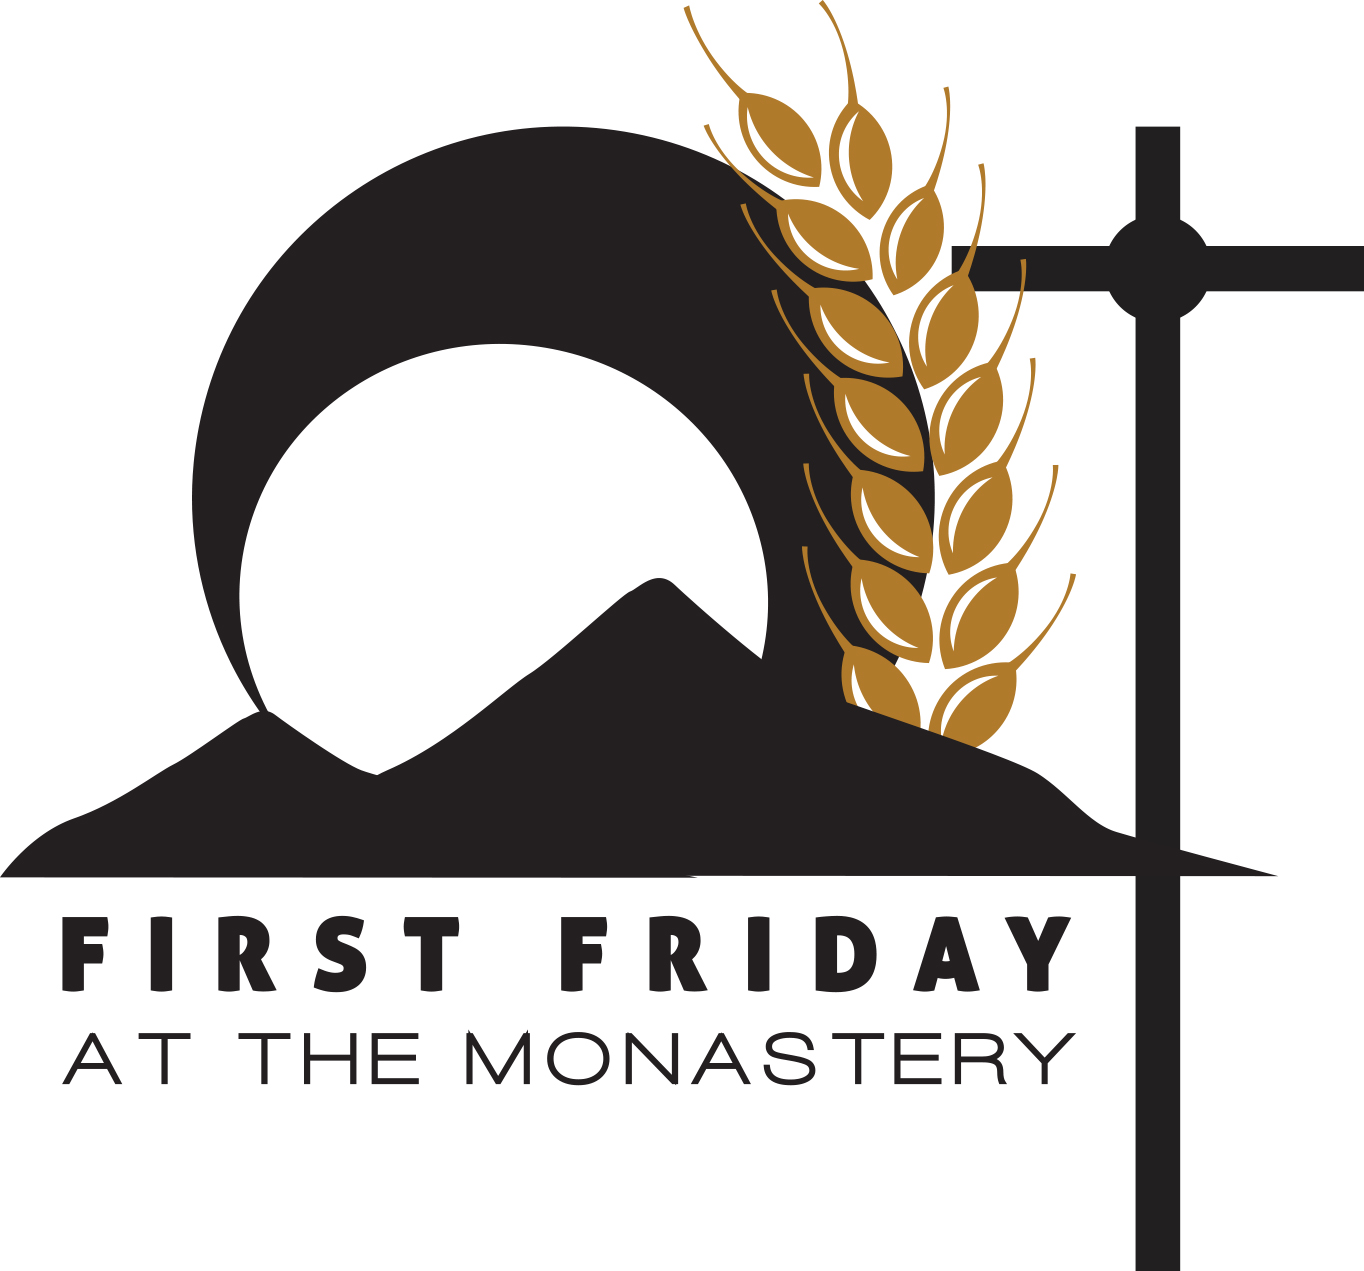 First Friday at the Monastery - SEPTEMBER